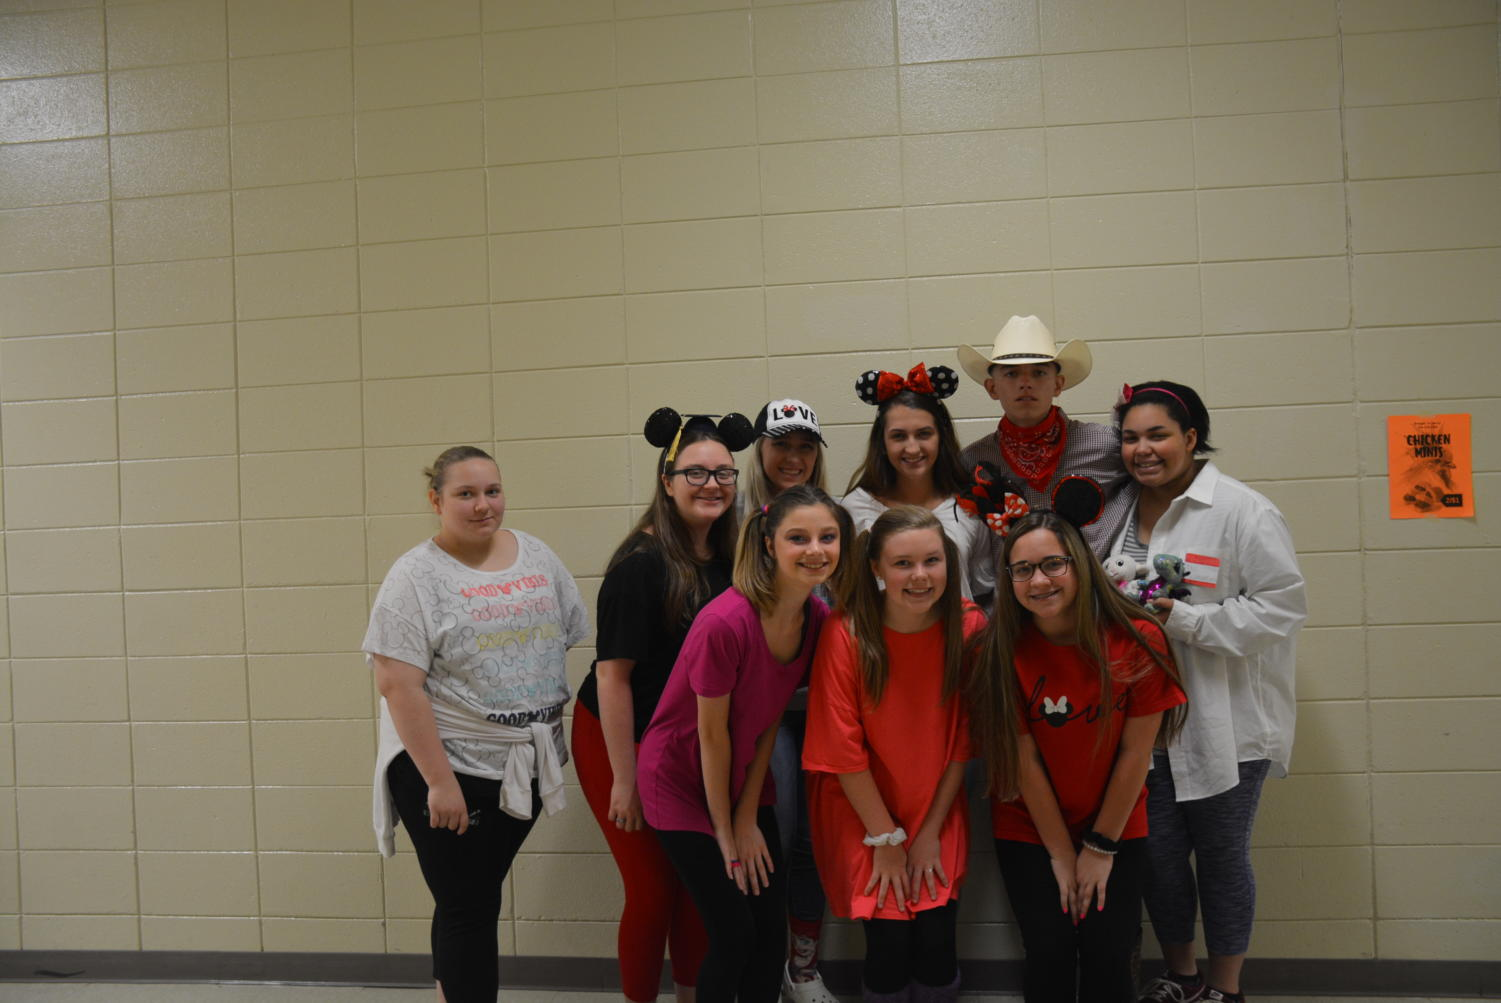 Students+from+chorus+dressed+up+for+Disney+day